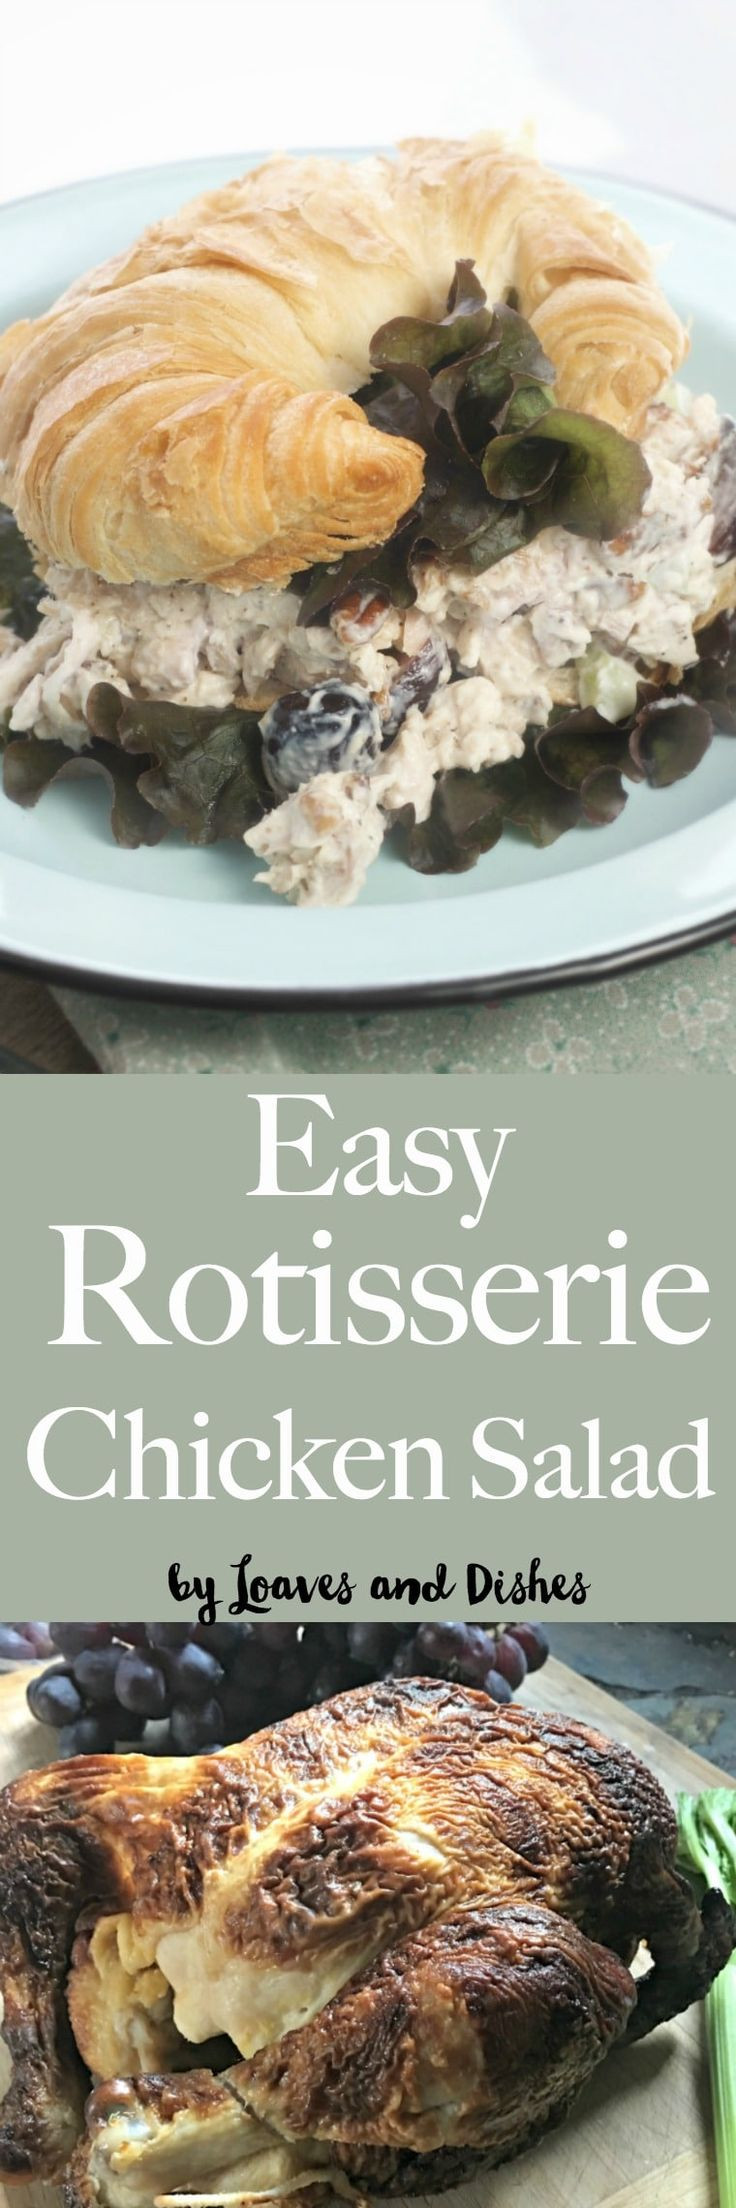 Chicken Salad With Grapes Recipe Paula Deen  Easy recipe for healthy chicken salad with grapes like the